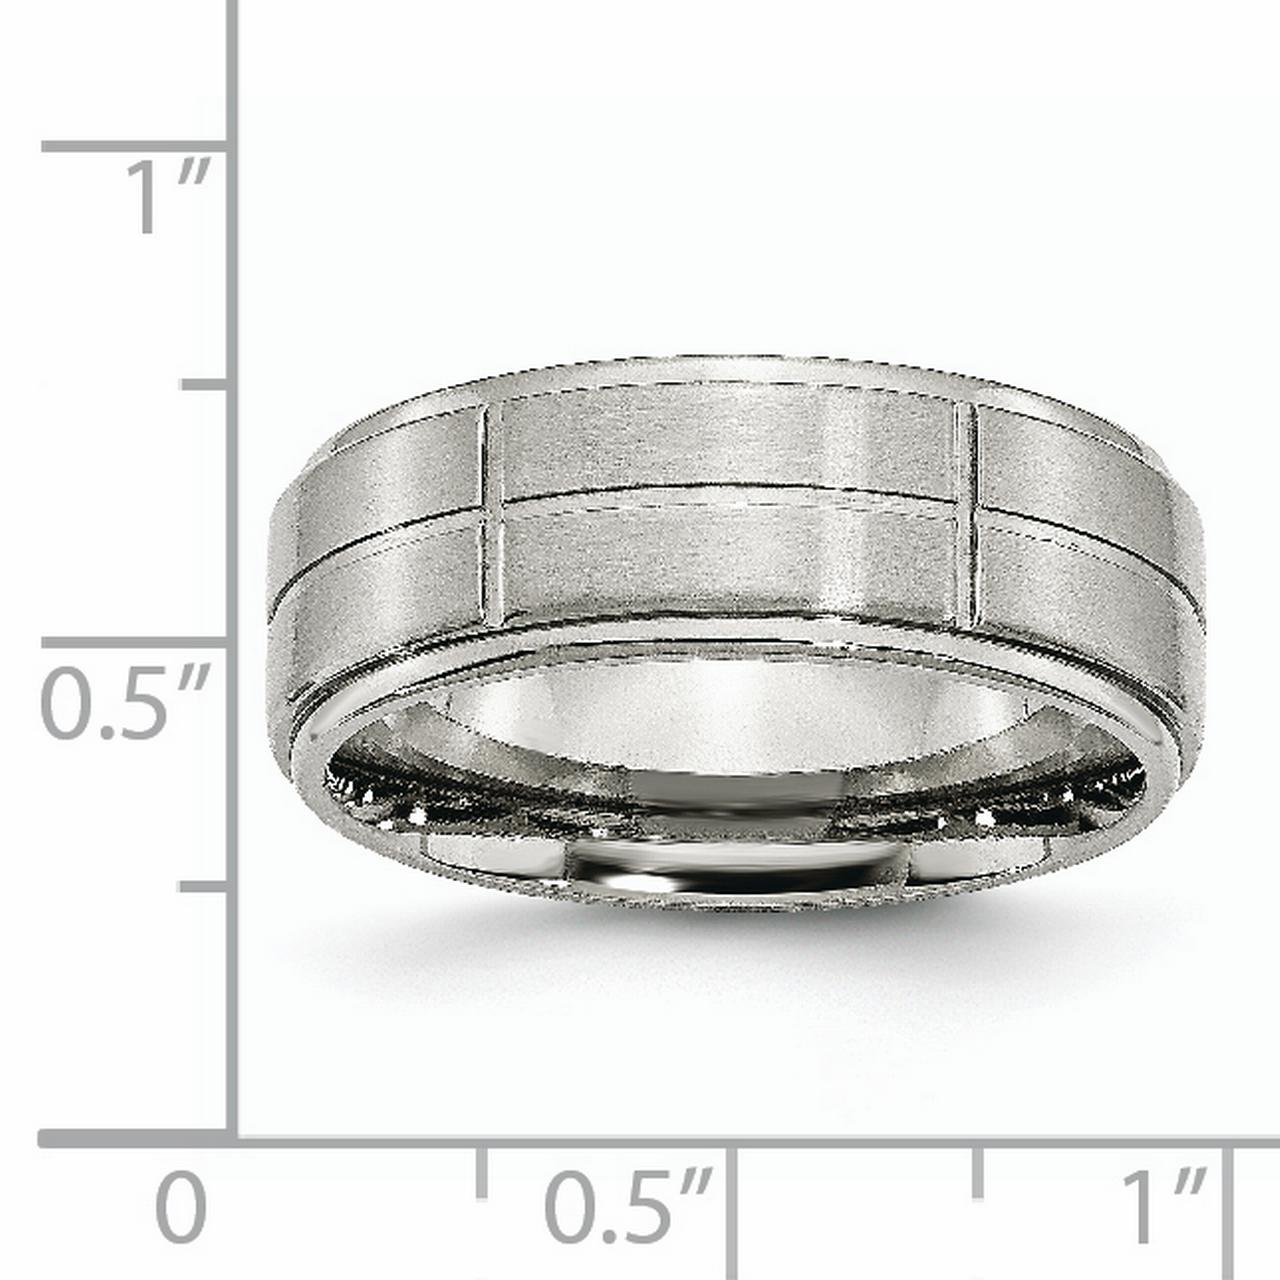 Stainless Steel Grooved 8mm Brushed/ Ridged Edge Wedding Ring Band Size 8.50 Fashion Jewelry Gifts For Women For Her - image 8 de 10